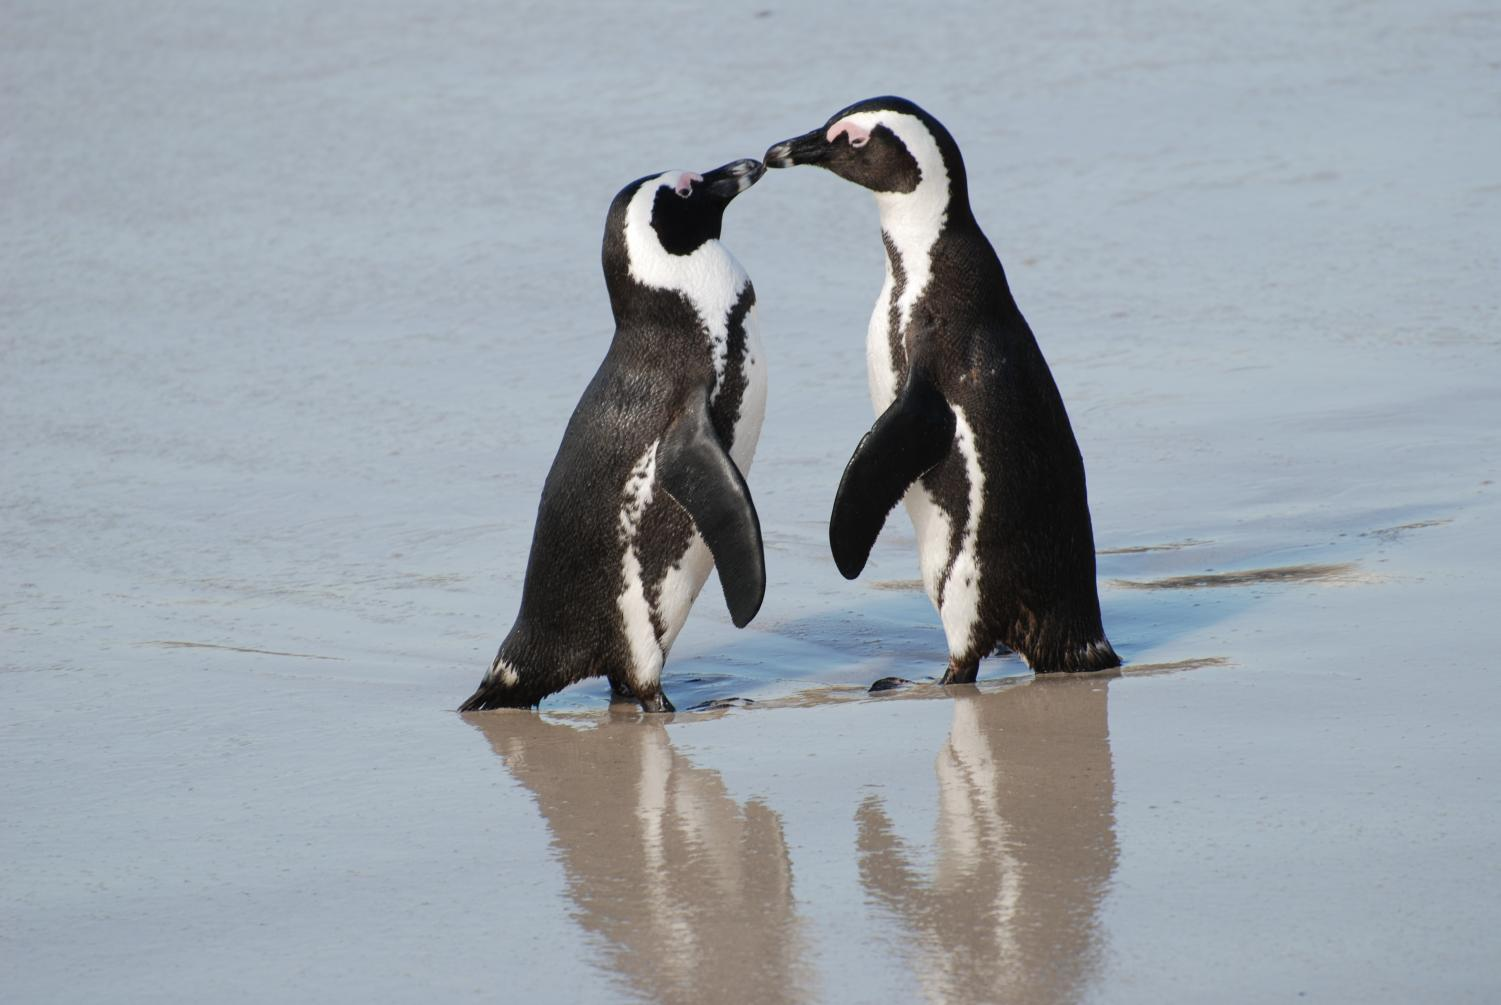 A pair of African penguins on a South African beach. Photo courtesy of Wikimedia Commons